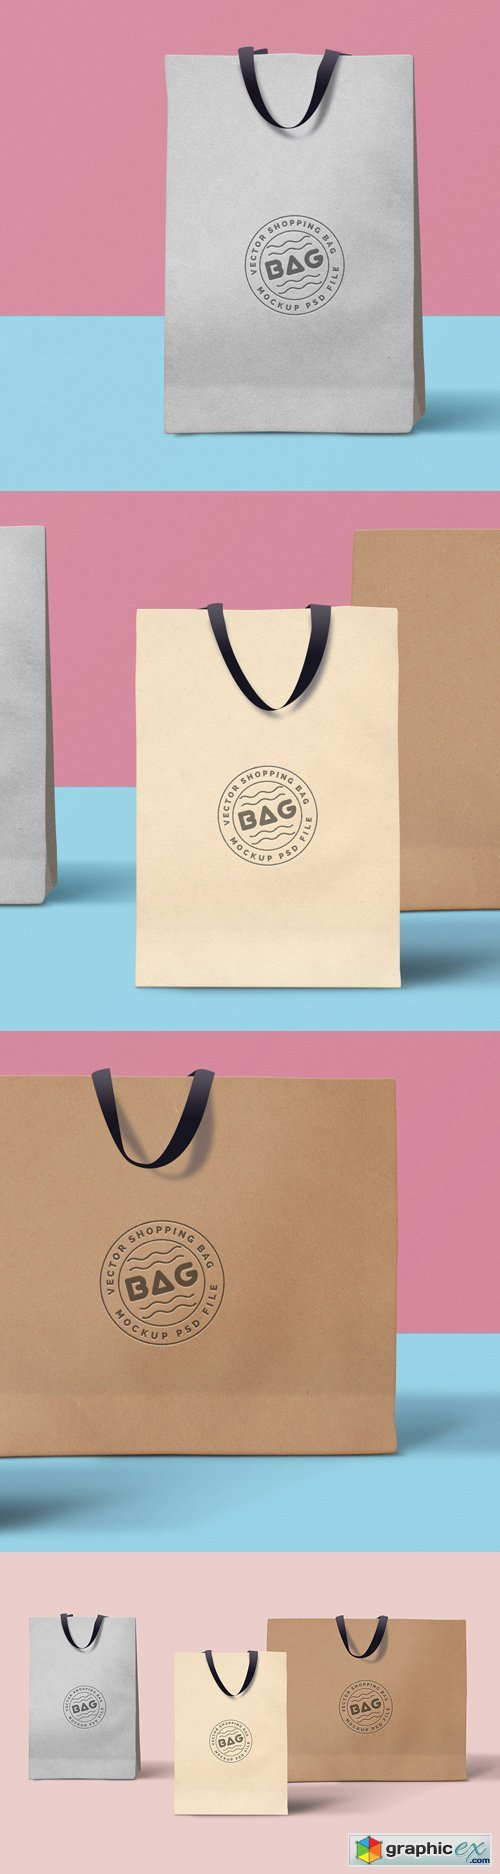 Shopping Bag Mockup, part 2